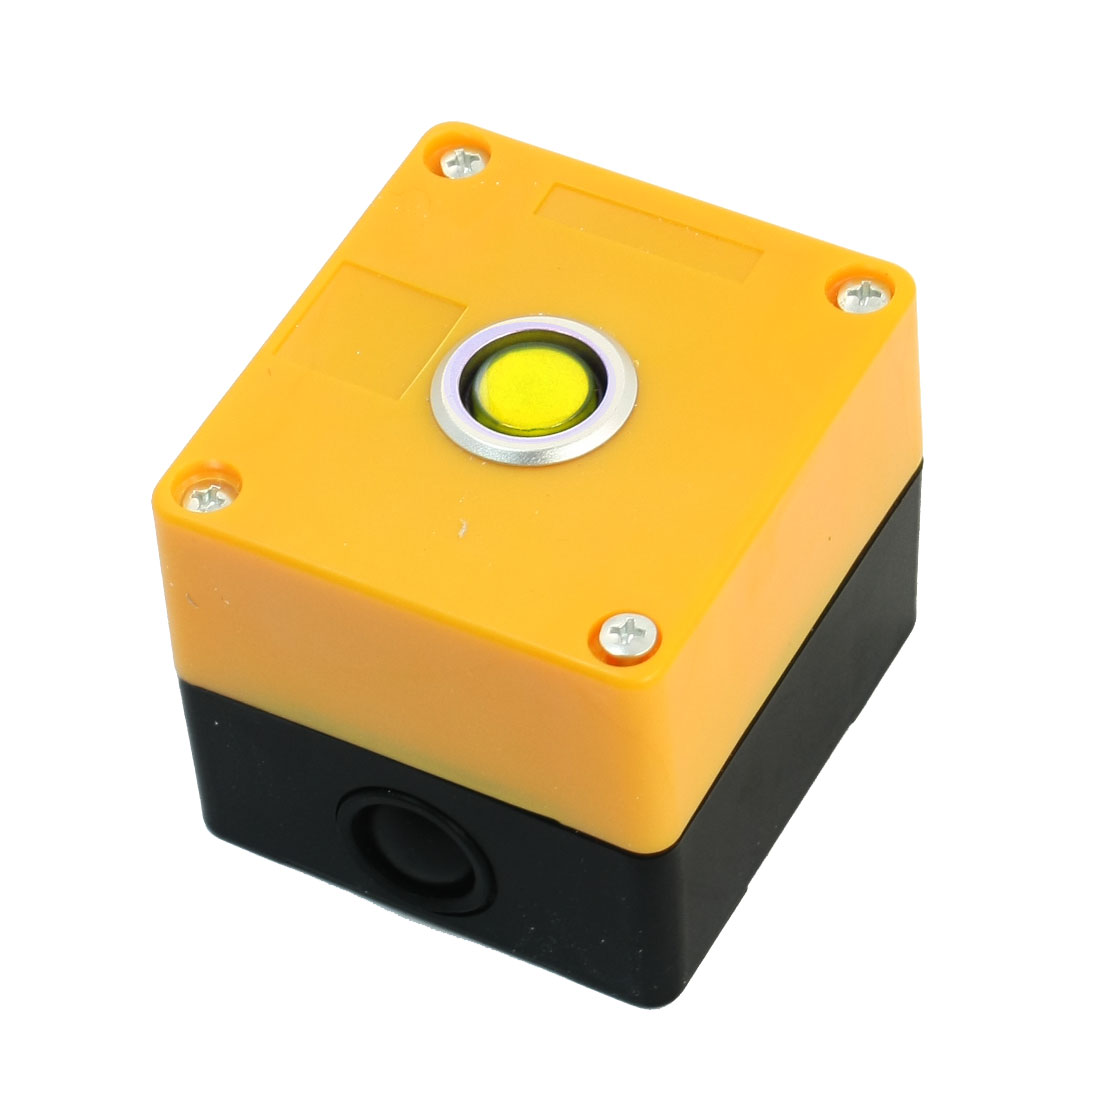 AC220V 5A SPDT 3Pin 1NO 1NC Momentary Yellow Button Rectangle Plastic Pushbutton Station Switch Control Box